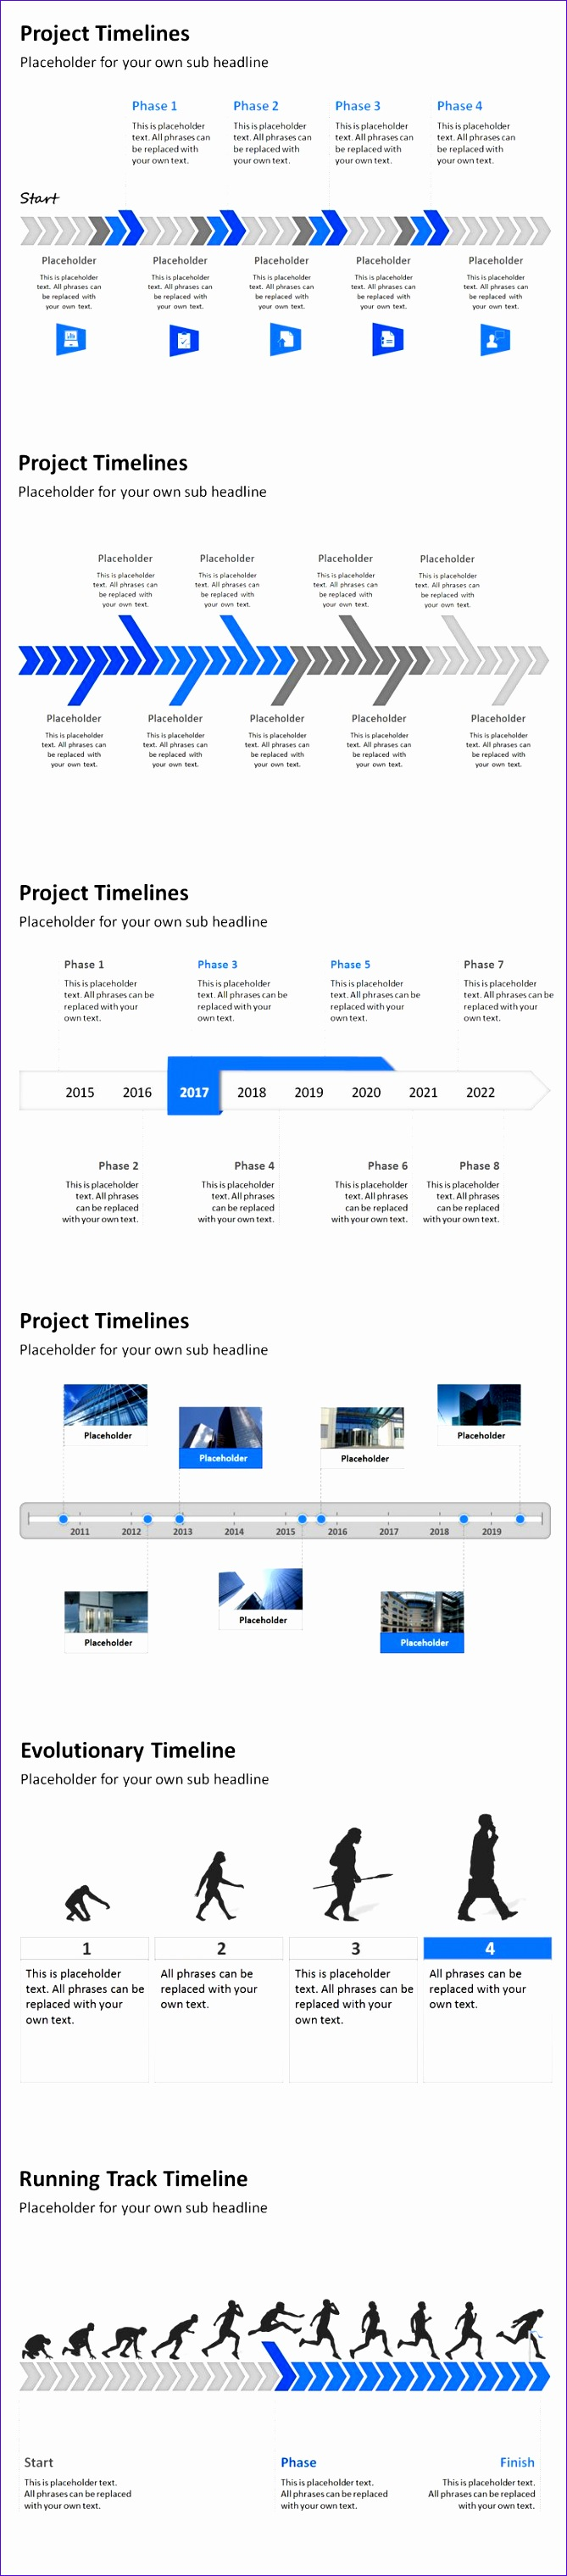 Free Gantt Chart Template for Excel 2007 Bhguc Best Of Best 25 Project Management Templates Ideas On Pinterest